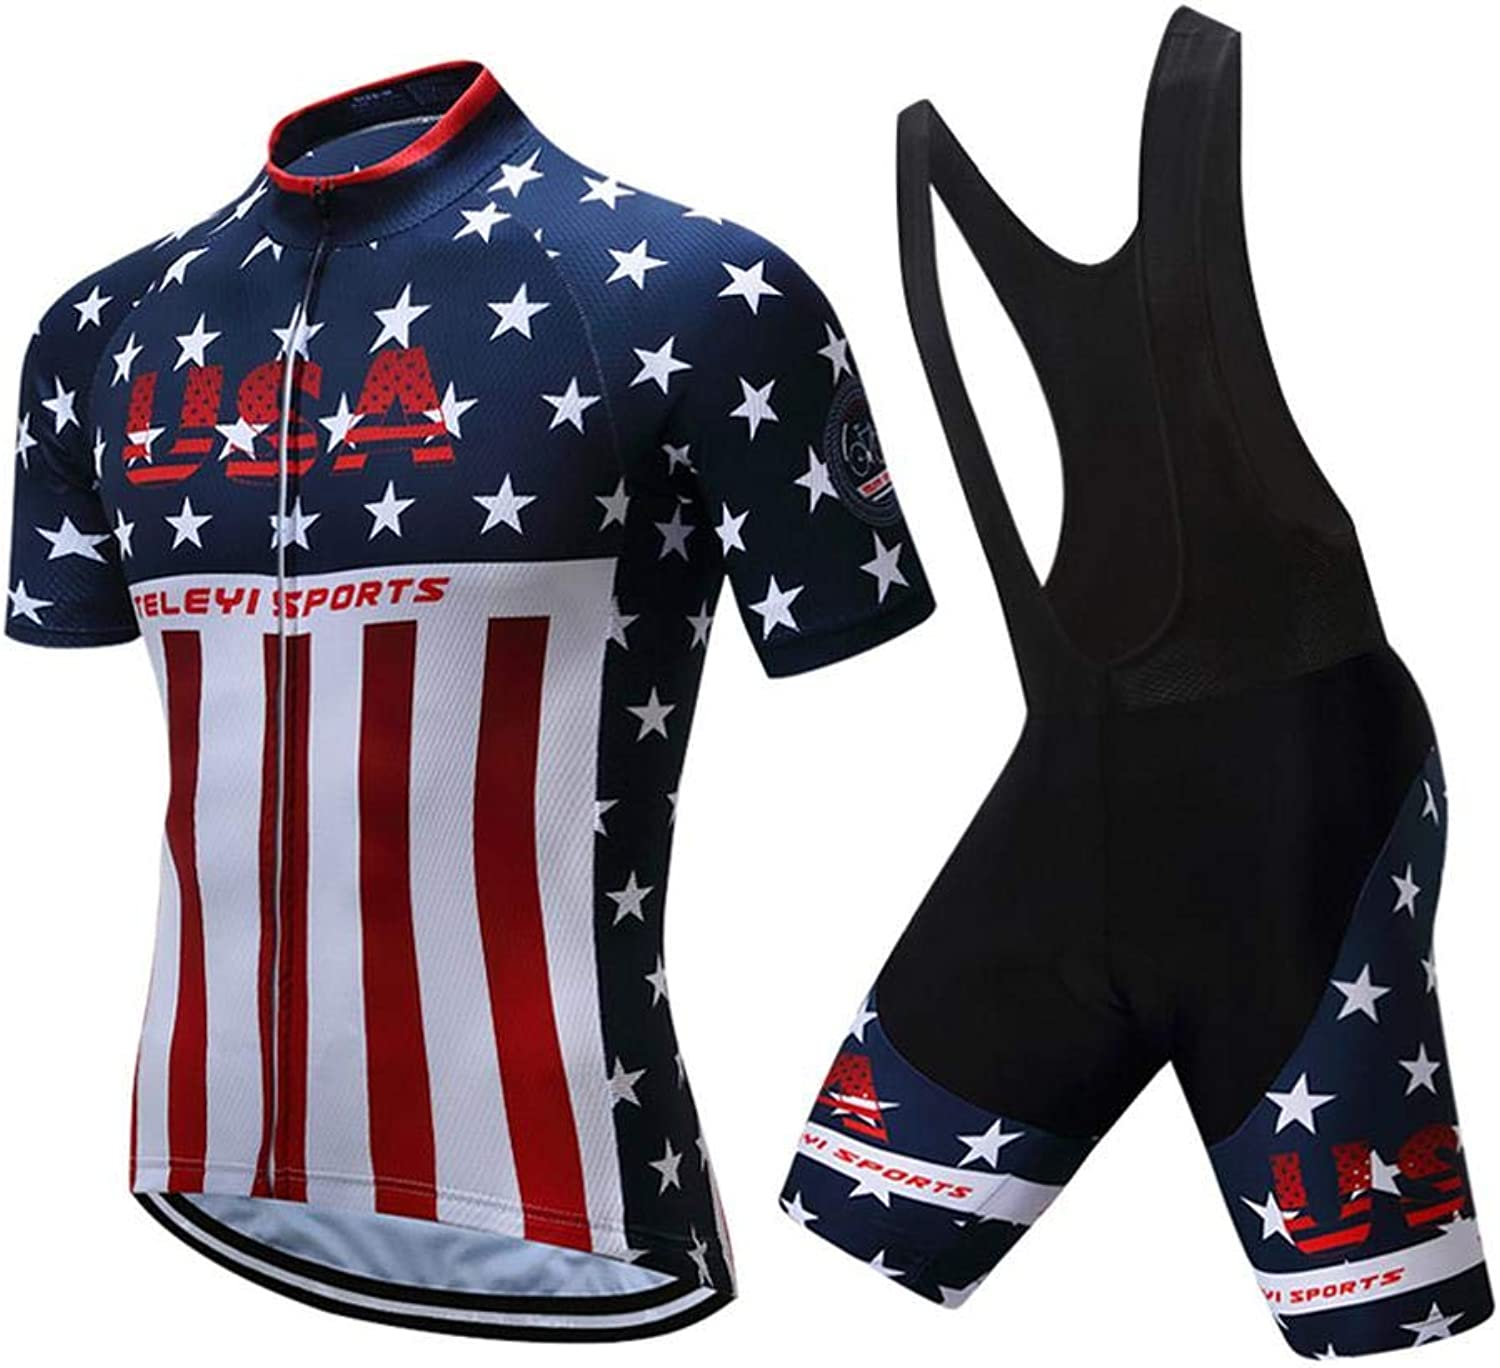 Men's Cycling Jersey, Men Cycling Clothing Set Short Sleeve Cycling Jersey + Cycling Bib Shorts